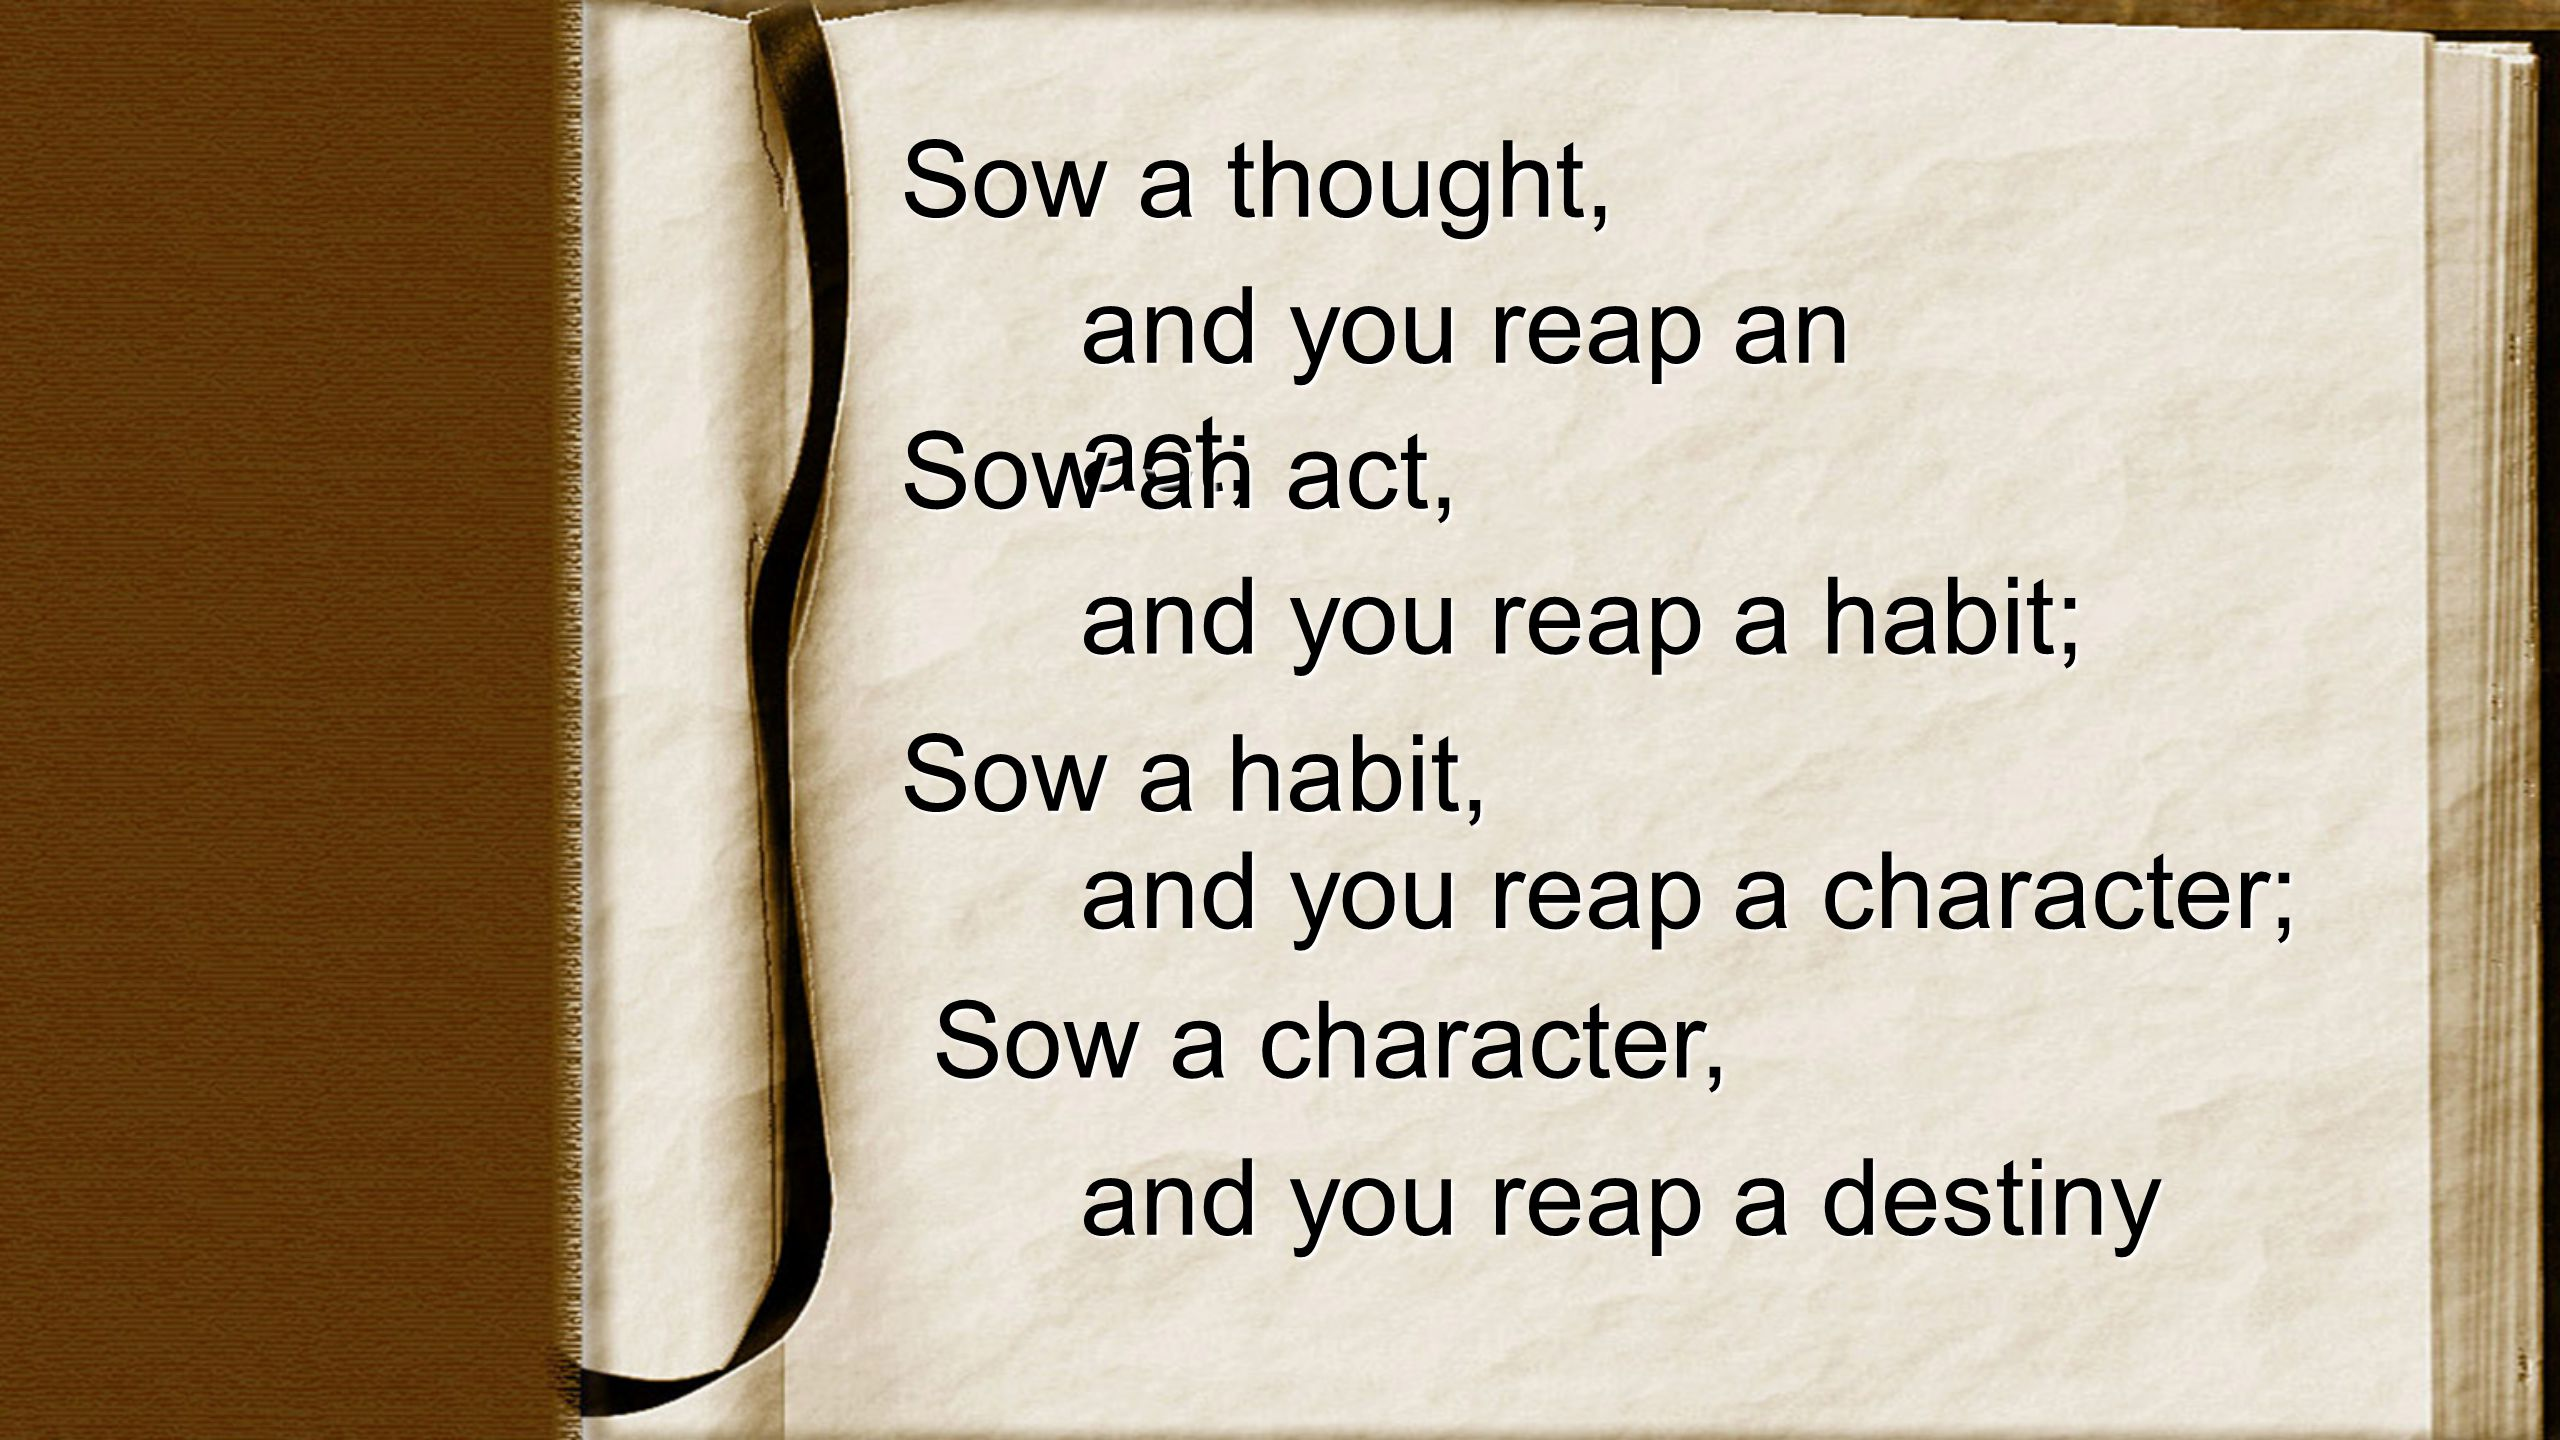 Sow a thought, and you reap an act; Sow an act, and you reap a habit; Sow a habit, and you reap a character; Sow a character, and you reap a destiny